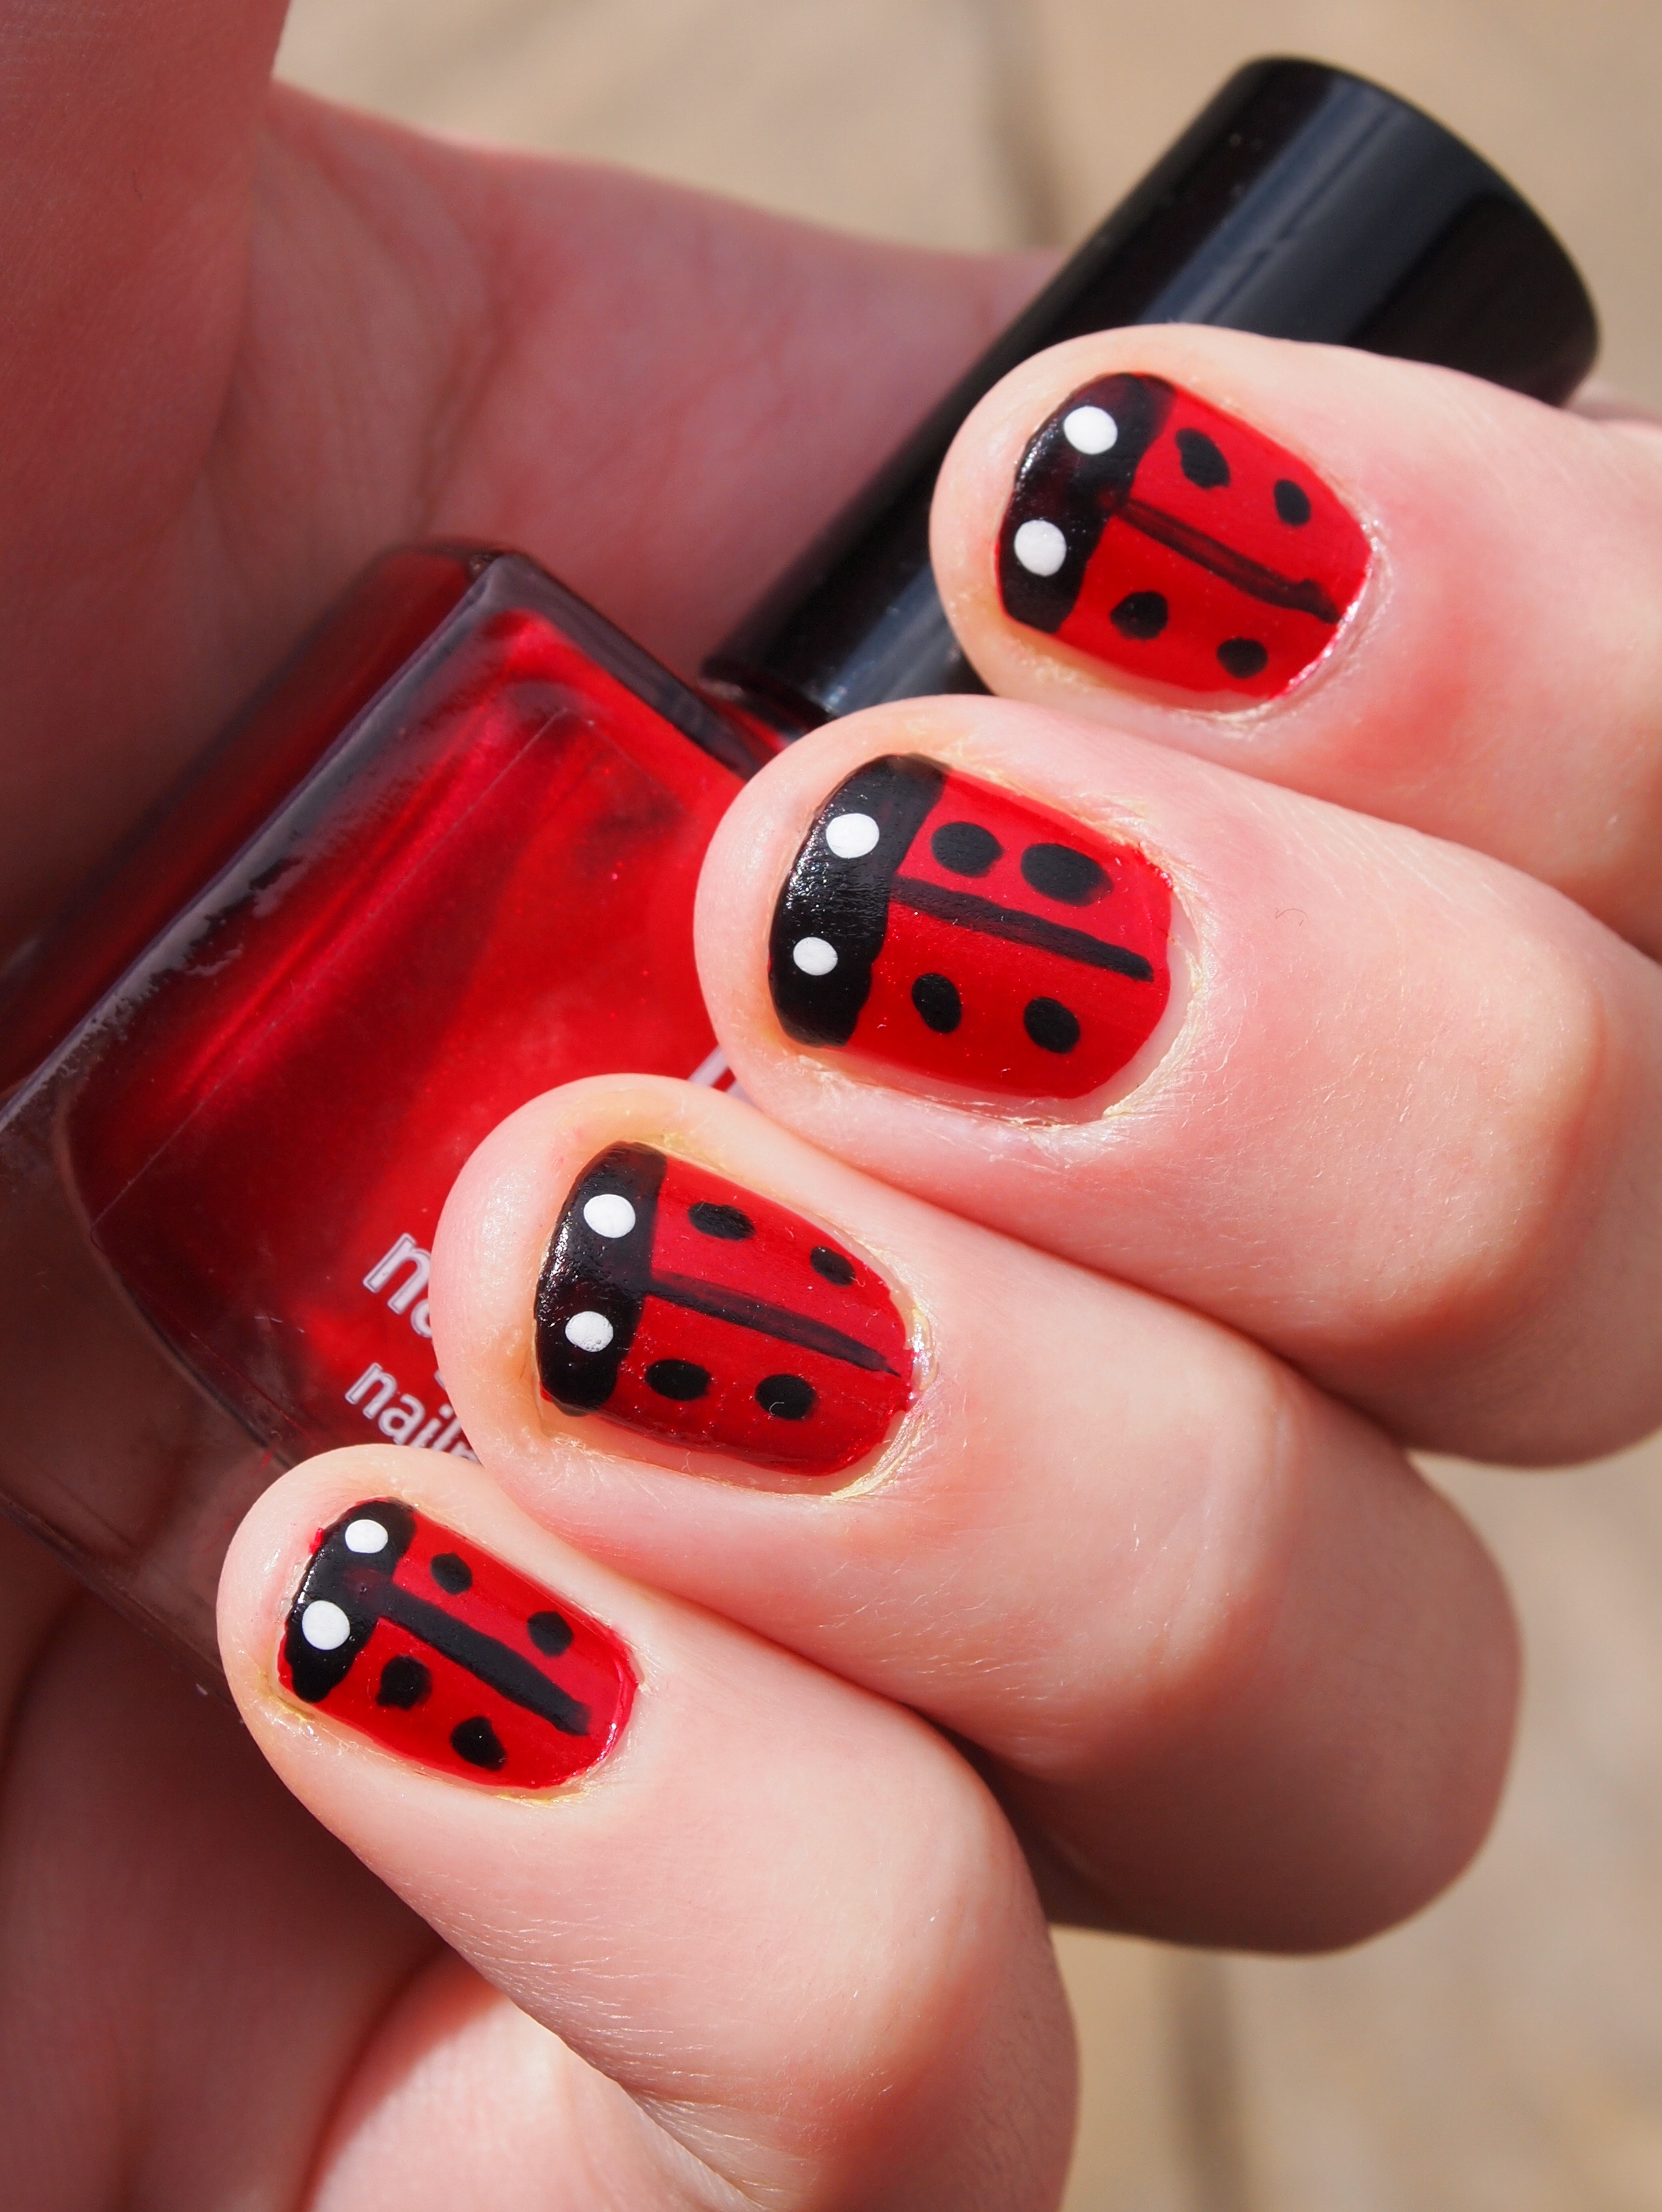 Cute Ladybug Nail Design: Diy lady bug nail pictures photos and ...